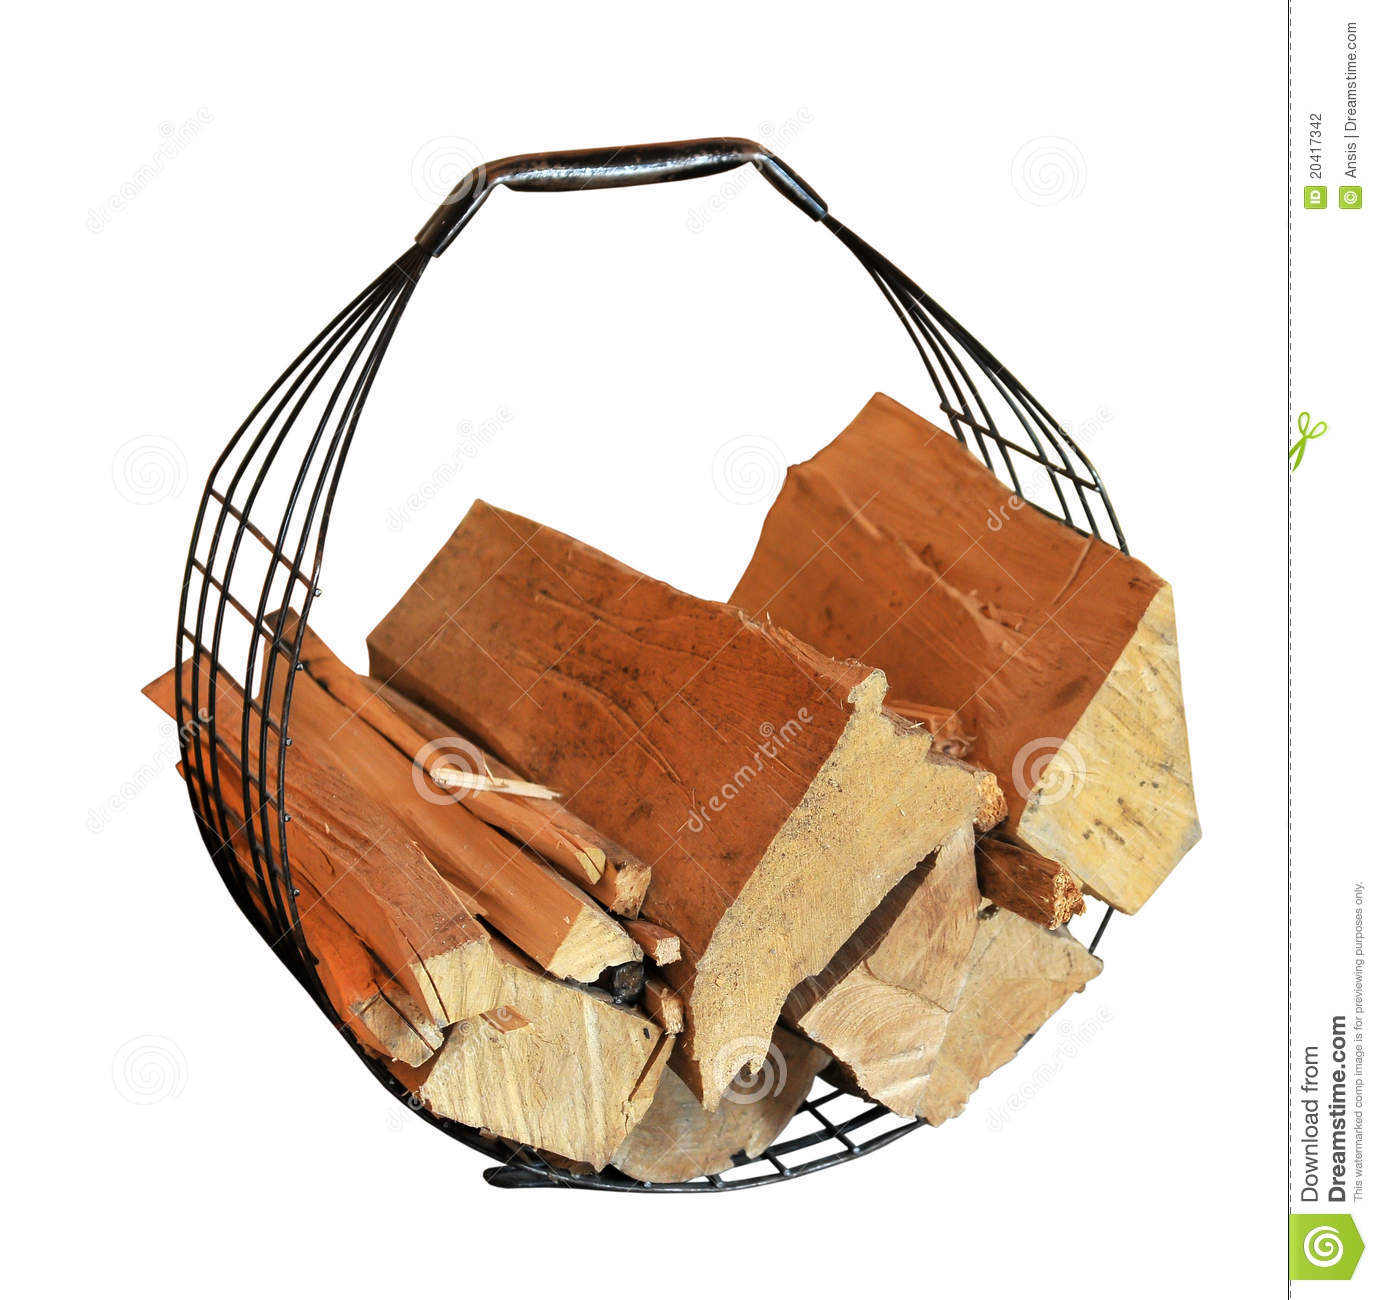 Basket for fire wood